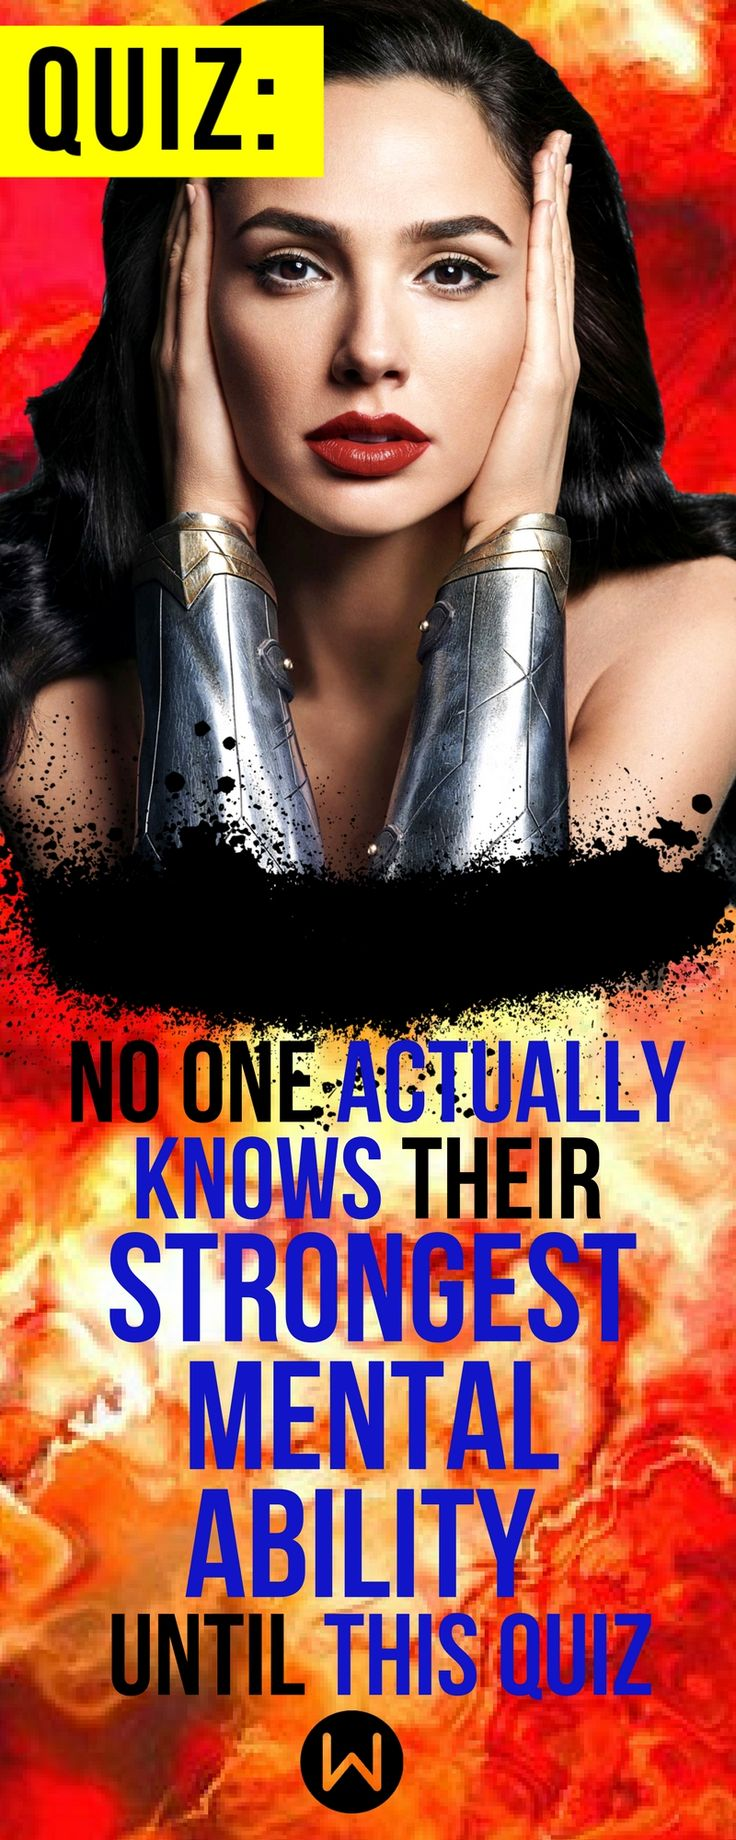 Quiz: Do you know how strong you really are? About Yourself Quiz, Fun Quiz, Personality Test, Random Questions, Personality Quiz, Girl Quiz,Buzzfeed Quizzes, Playbuzz Quiz, Psychology, Personality Quizzes for Teens, Fun Tests, Personality Types